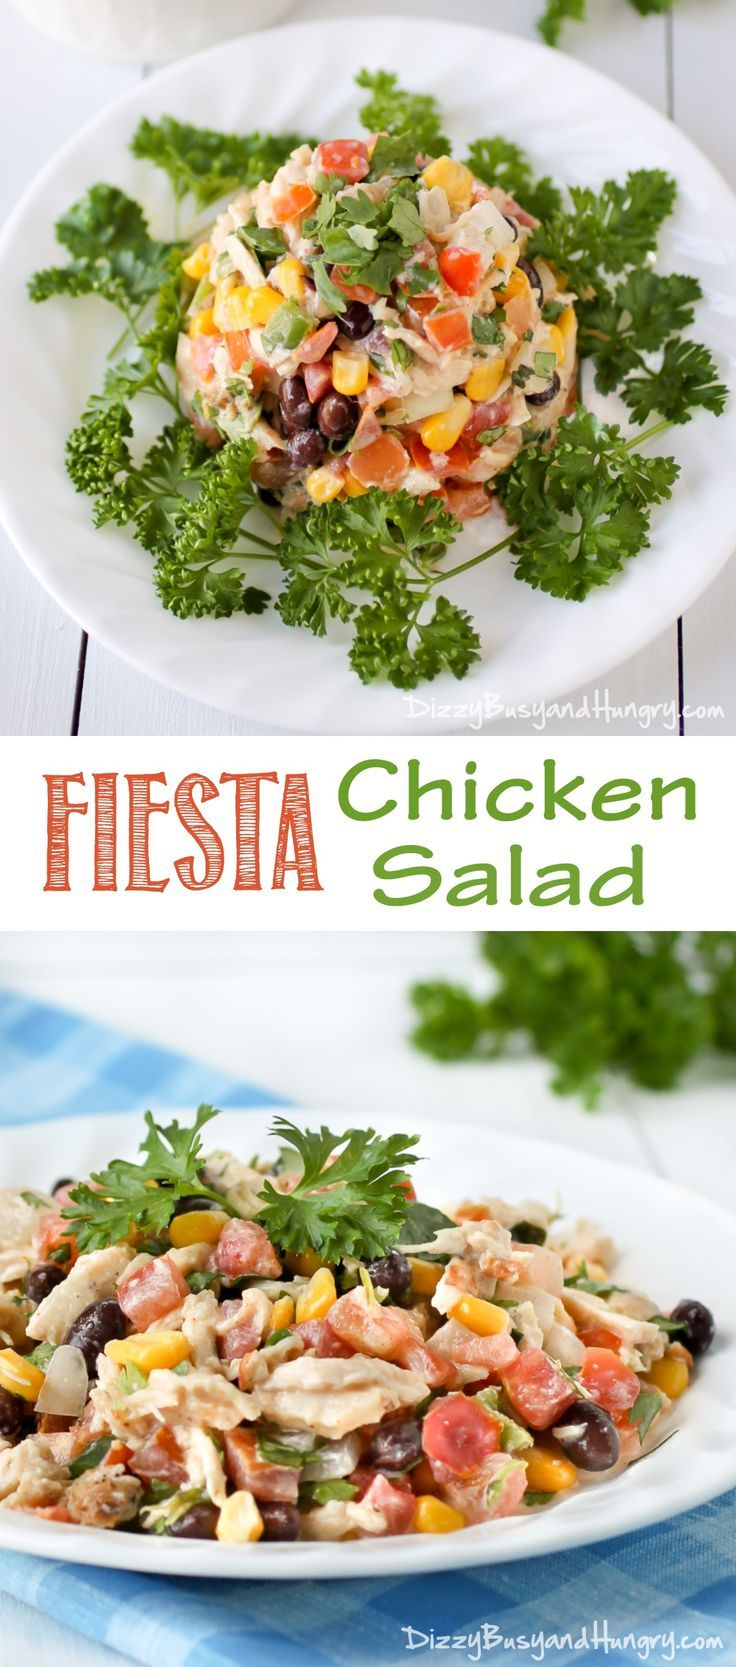 3273 best party food images on pinterest cooking recipes fiesta chicken salad forumfinder Gallery